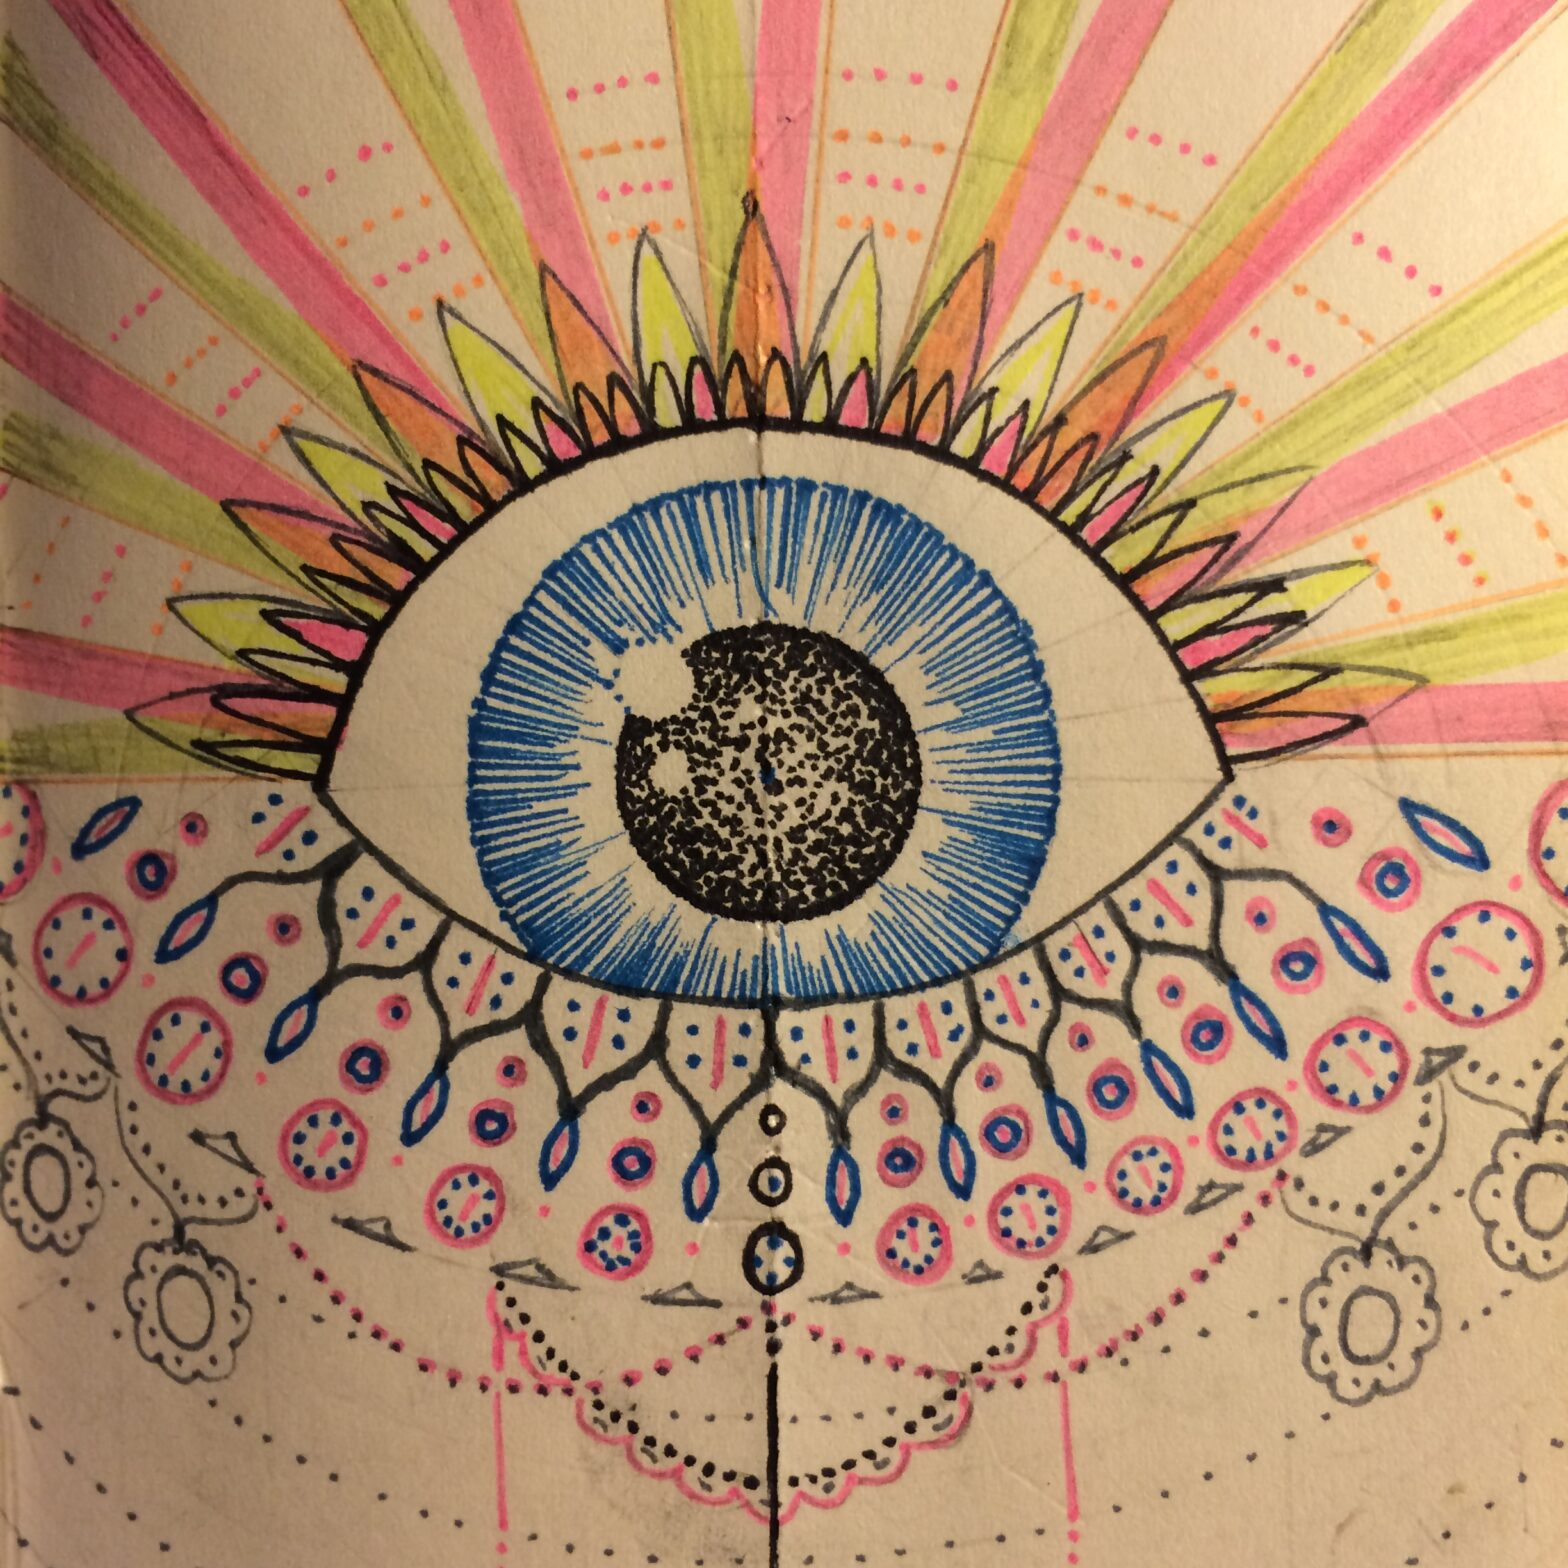 Rise of Awareness